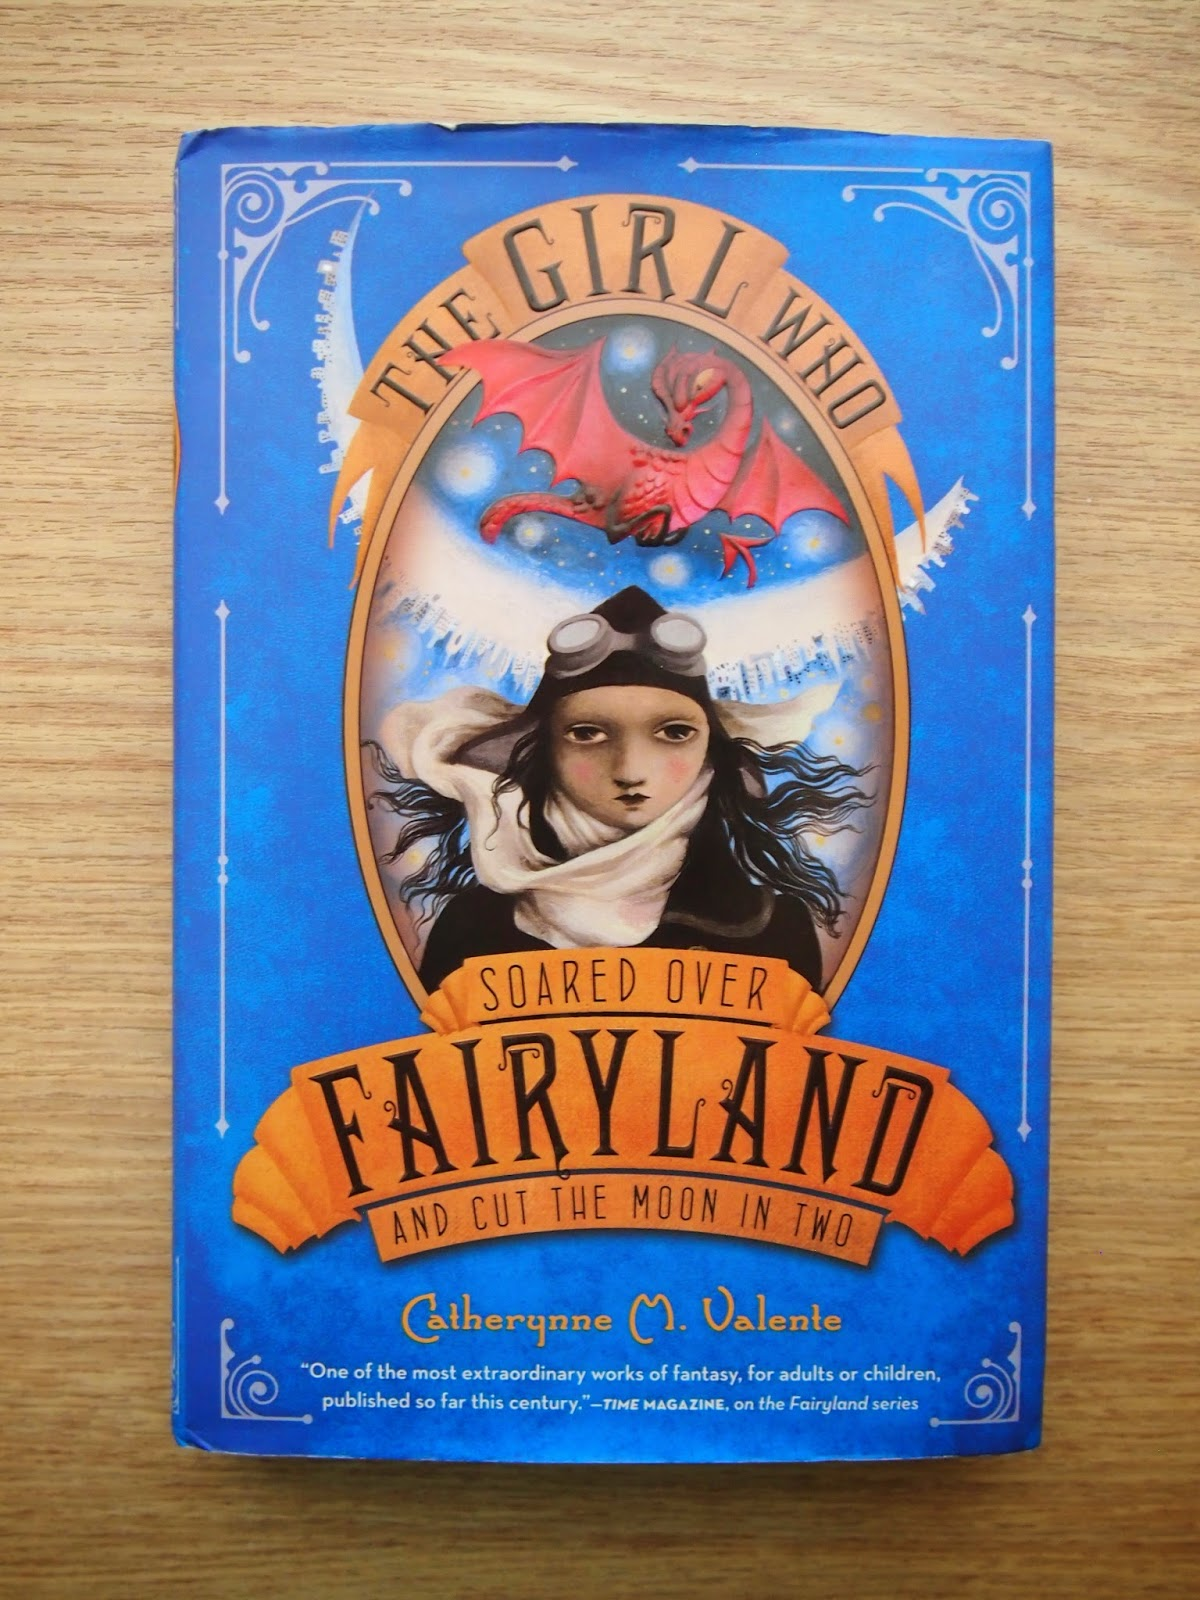 an image of the cover of the girl who soared over fairyland and cut the moon in two